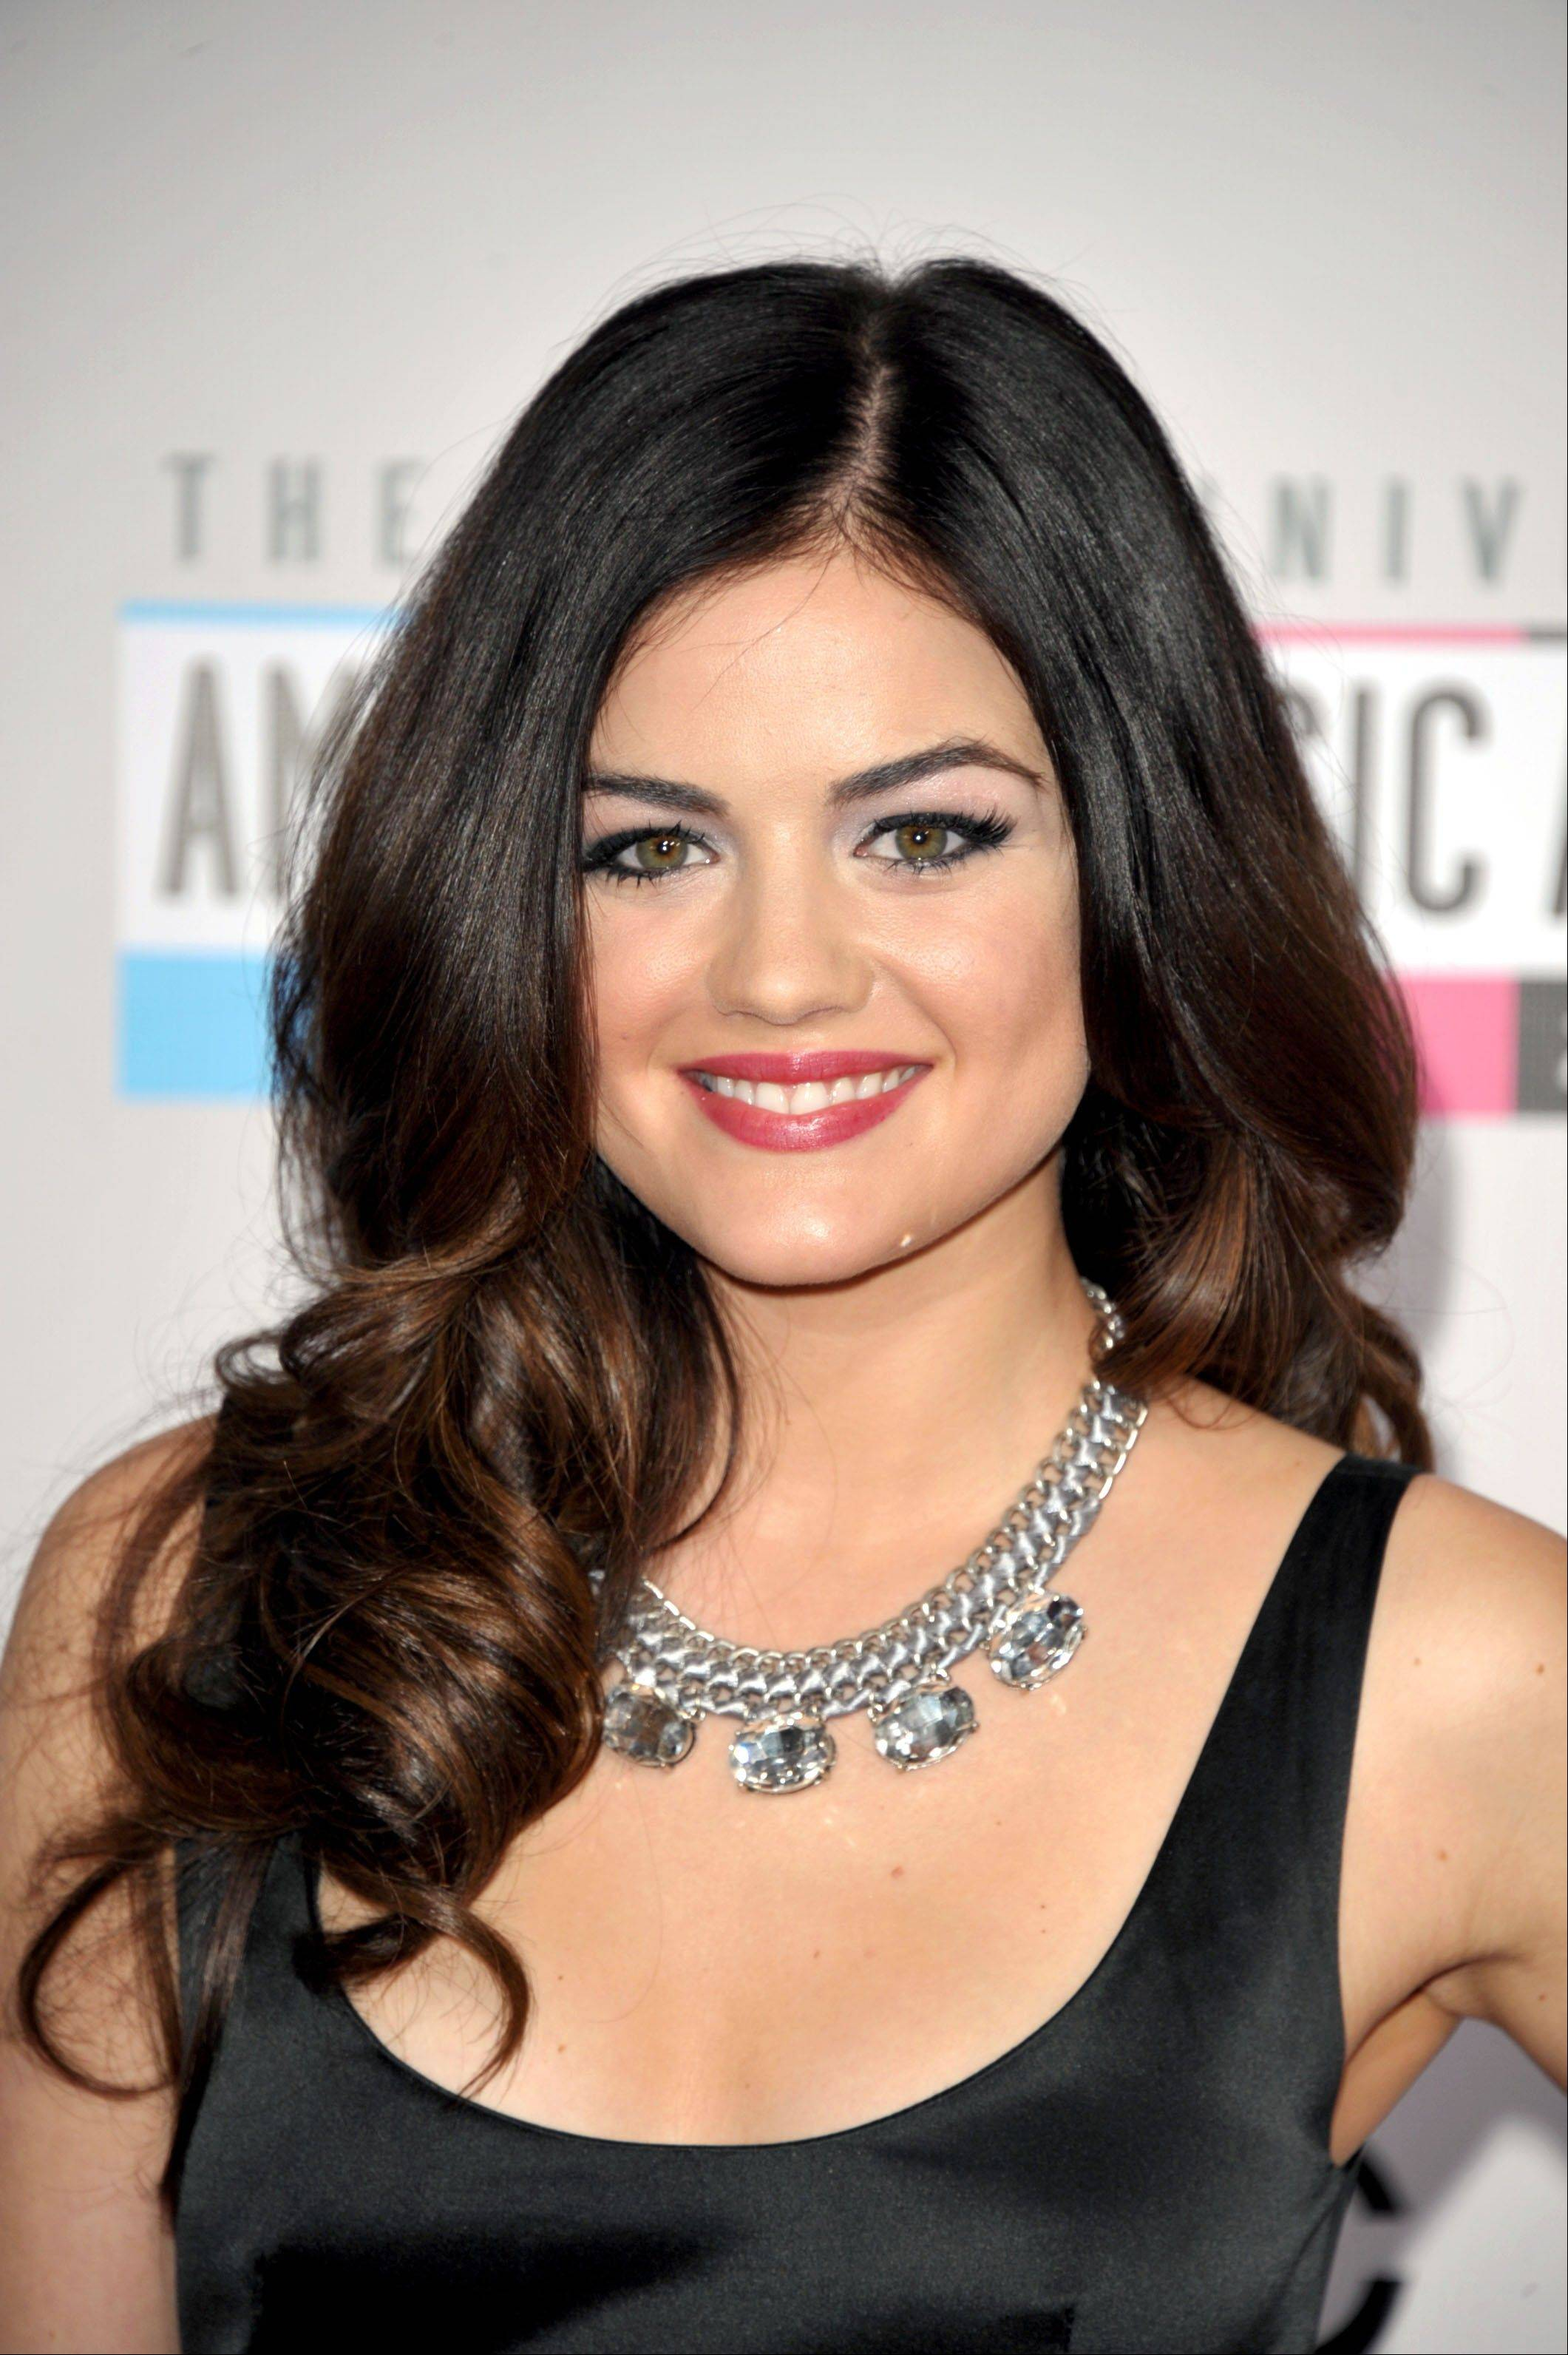 """Pretty Little Liars"" star Lucy Hale arrives at the 40th Anniversary American Music Awards."